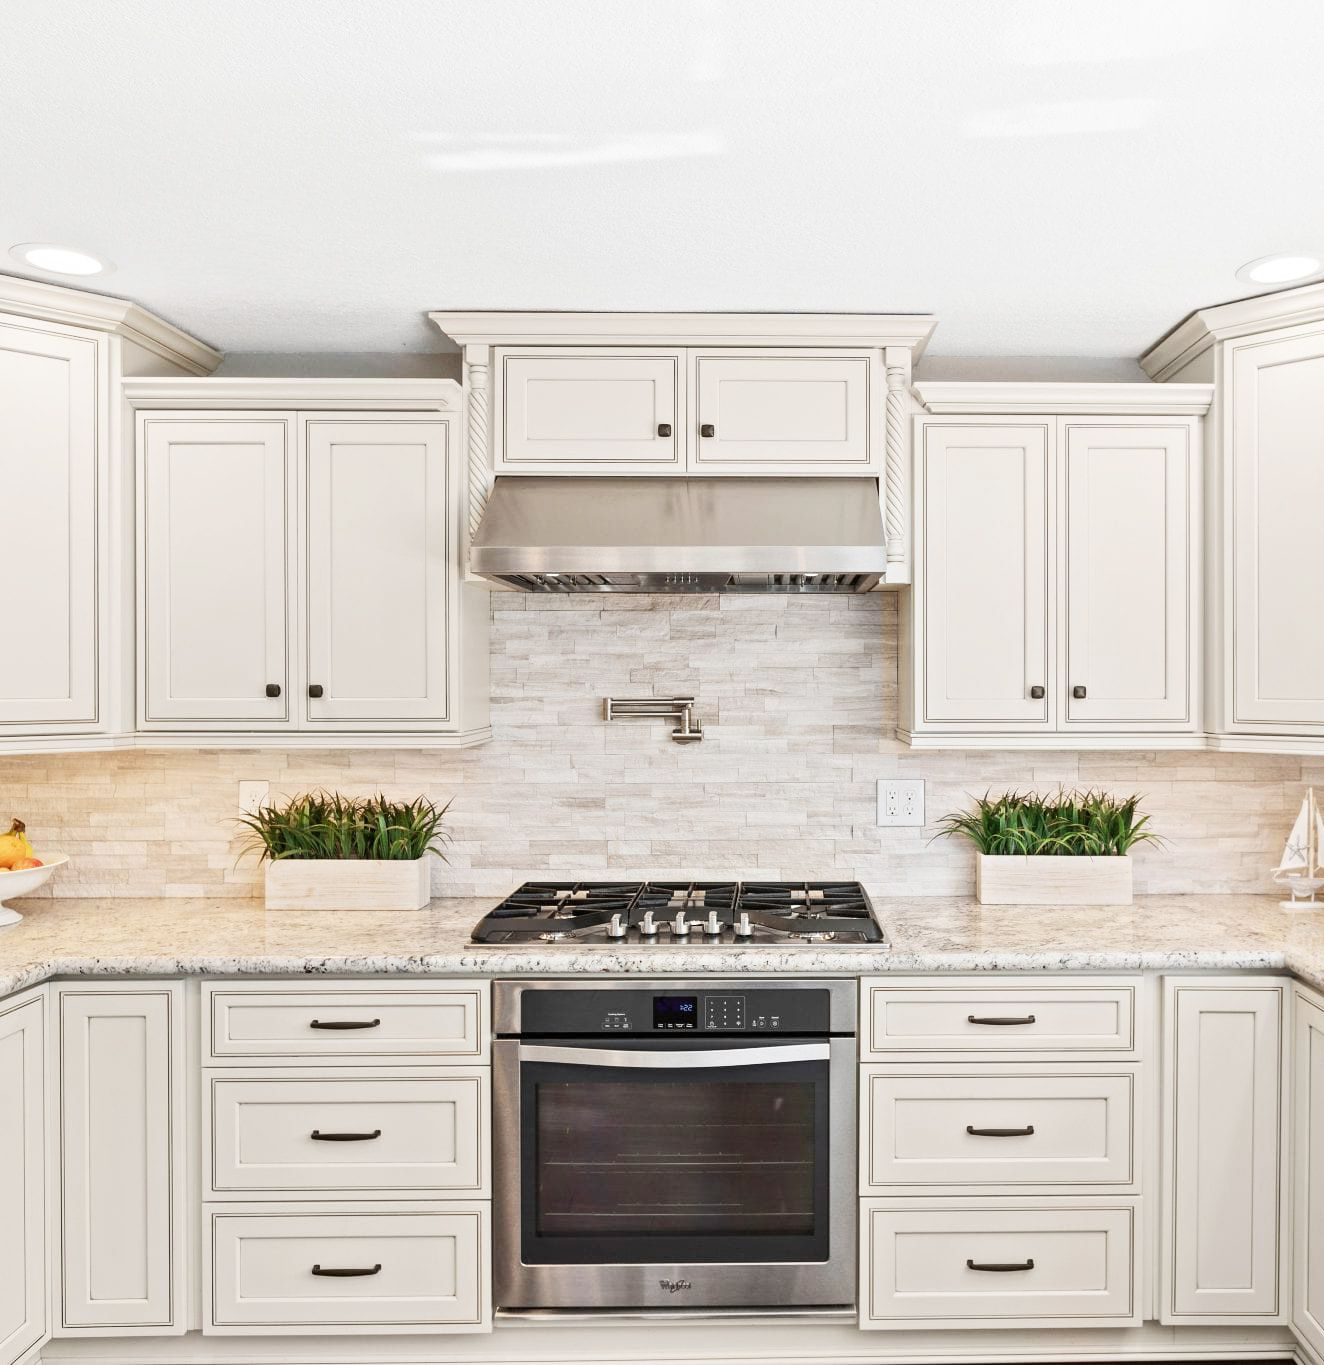 Home Cabinet Westbury H9 Style Pearl Maple Glazed Kitchen Glazed Kitchen Cabinets Classic Kitchen Design Kitchen Remodel